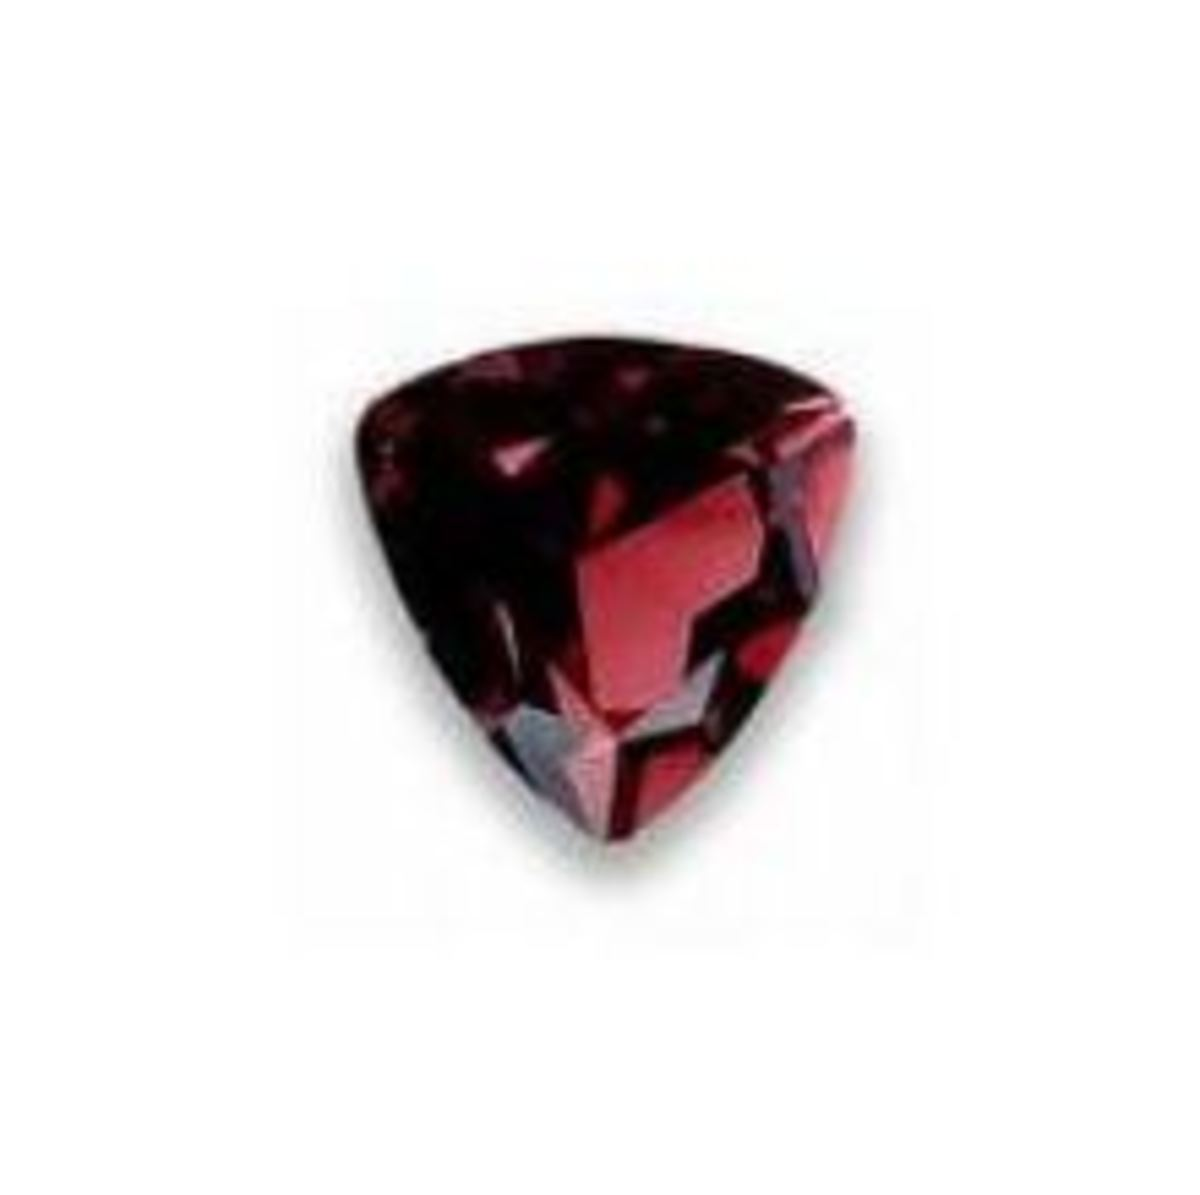 Garnet Gemstone is the Birthstone of January and Wedding Anniversary Gemstone of the 2nd and 6th year of Marriage.